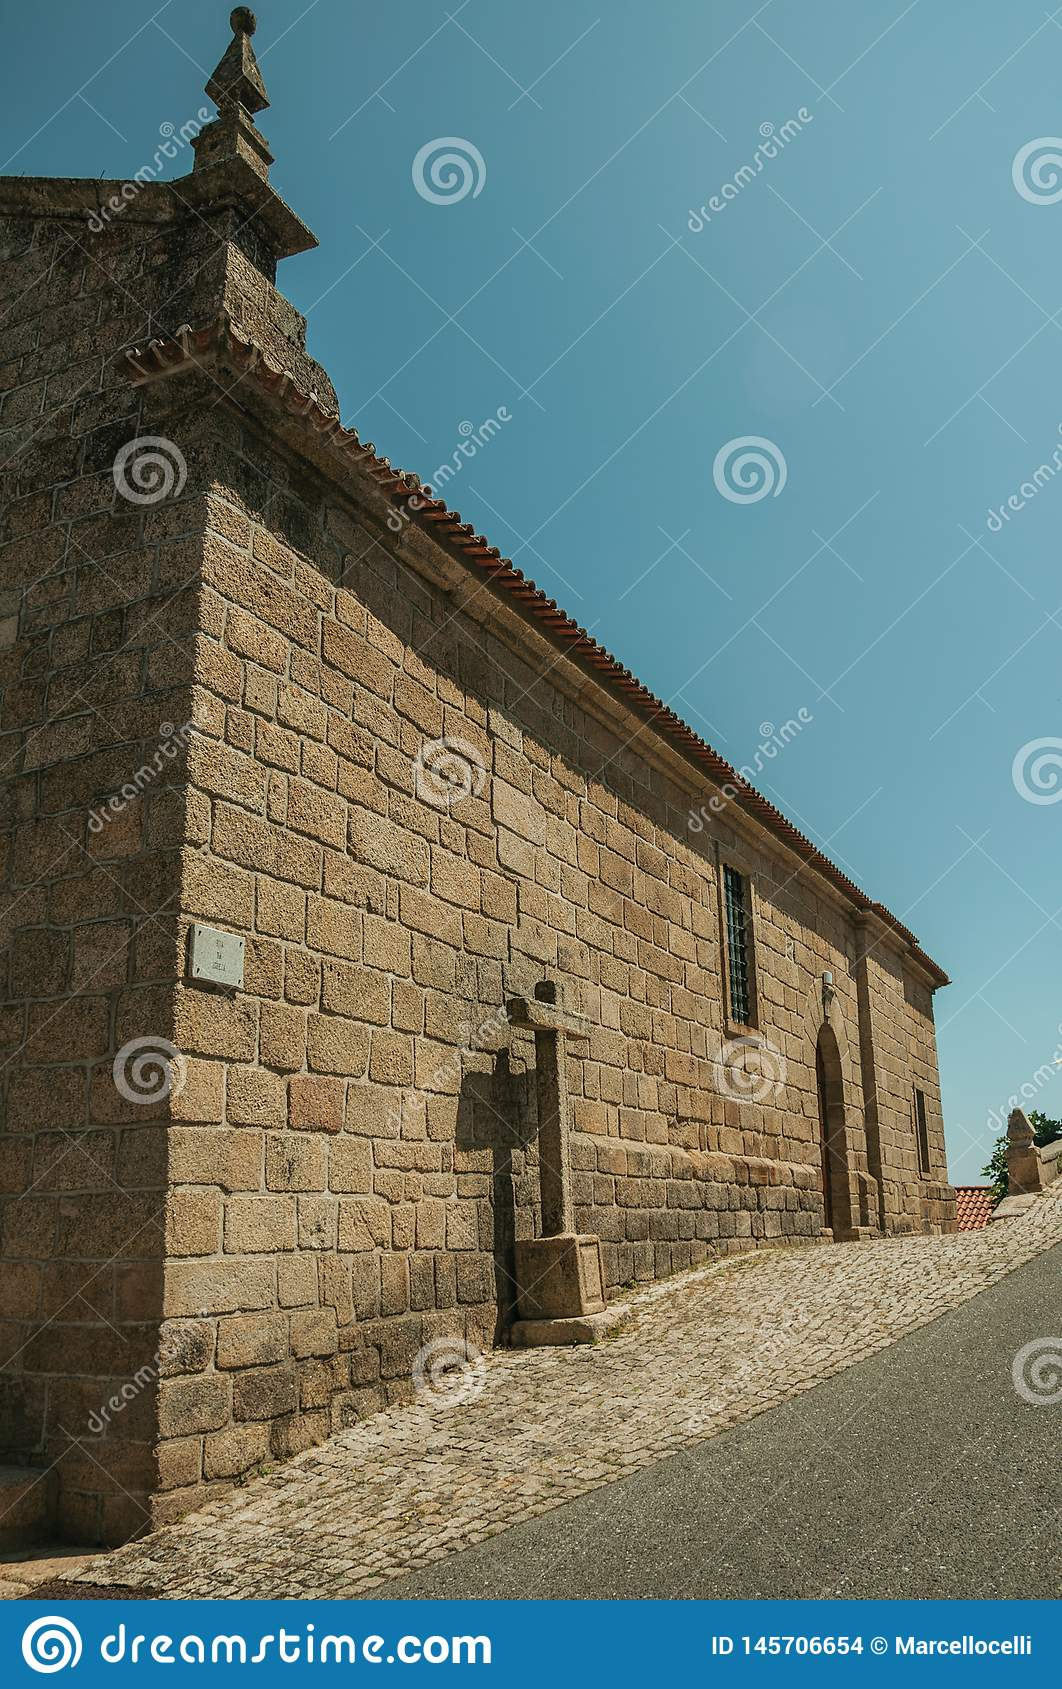 Gothic church with stone wall and cross at Monsanto